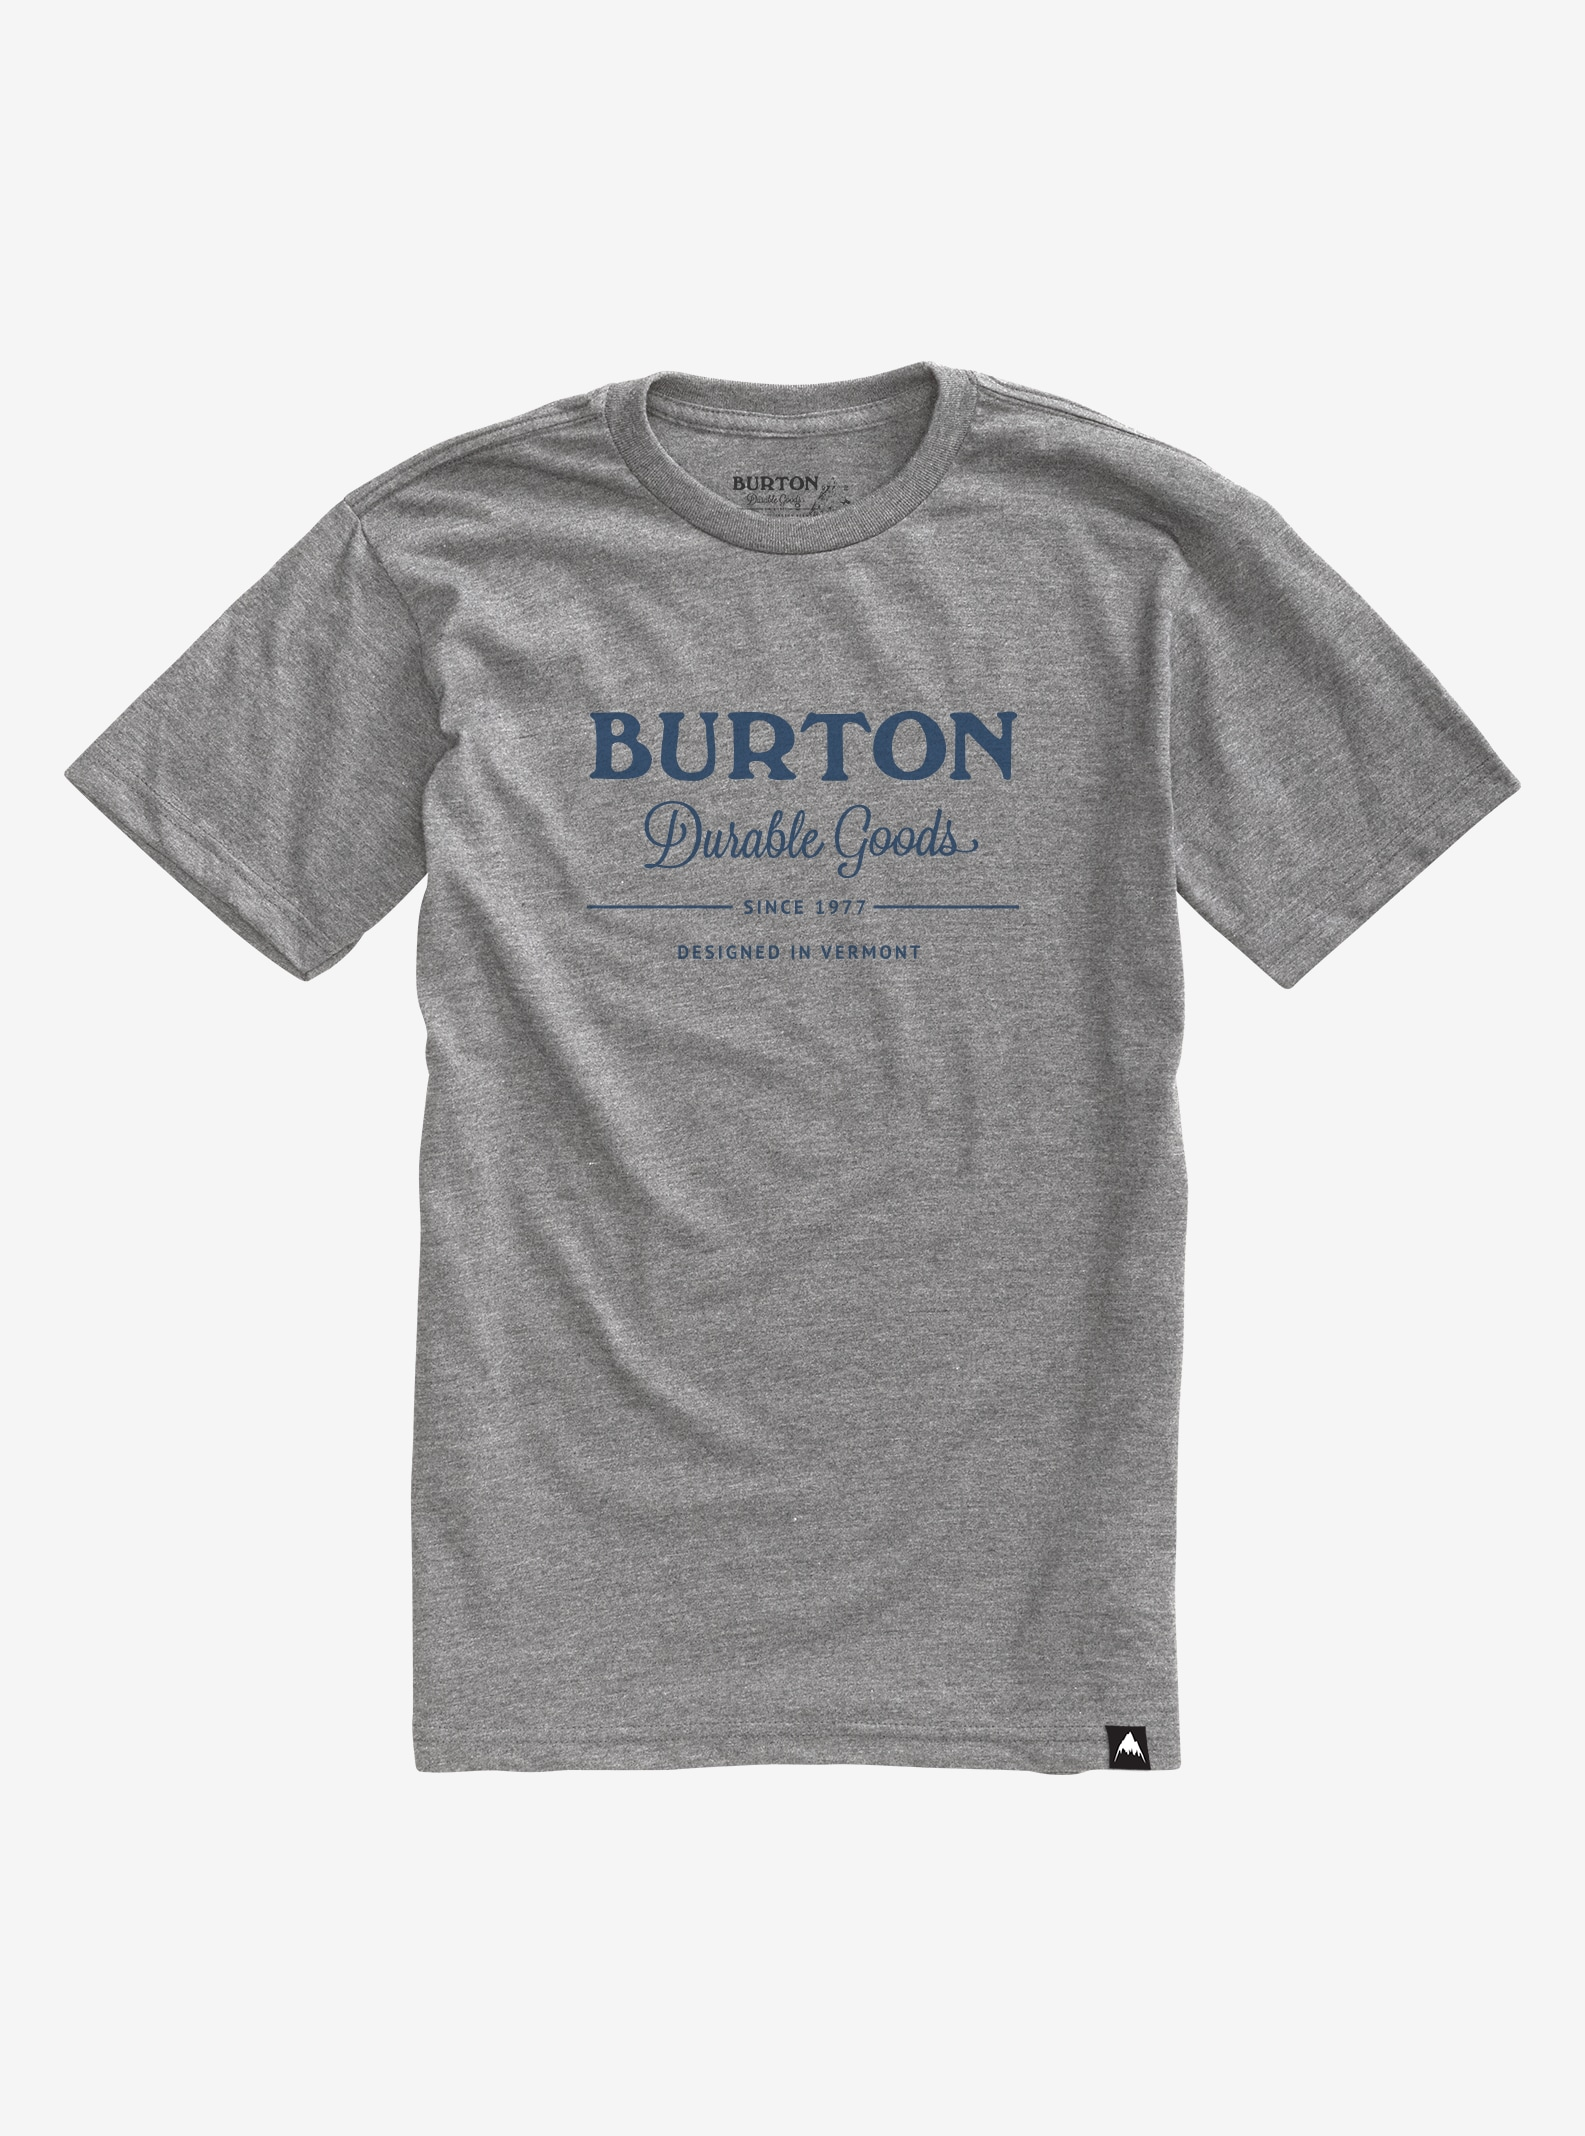 Burton Durable Goods Short Sleeve T Shirt shown in Gray Heather